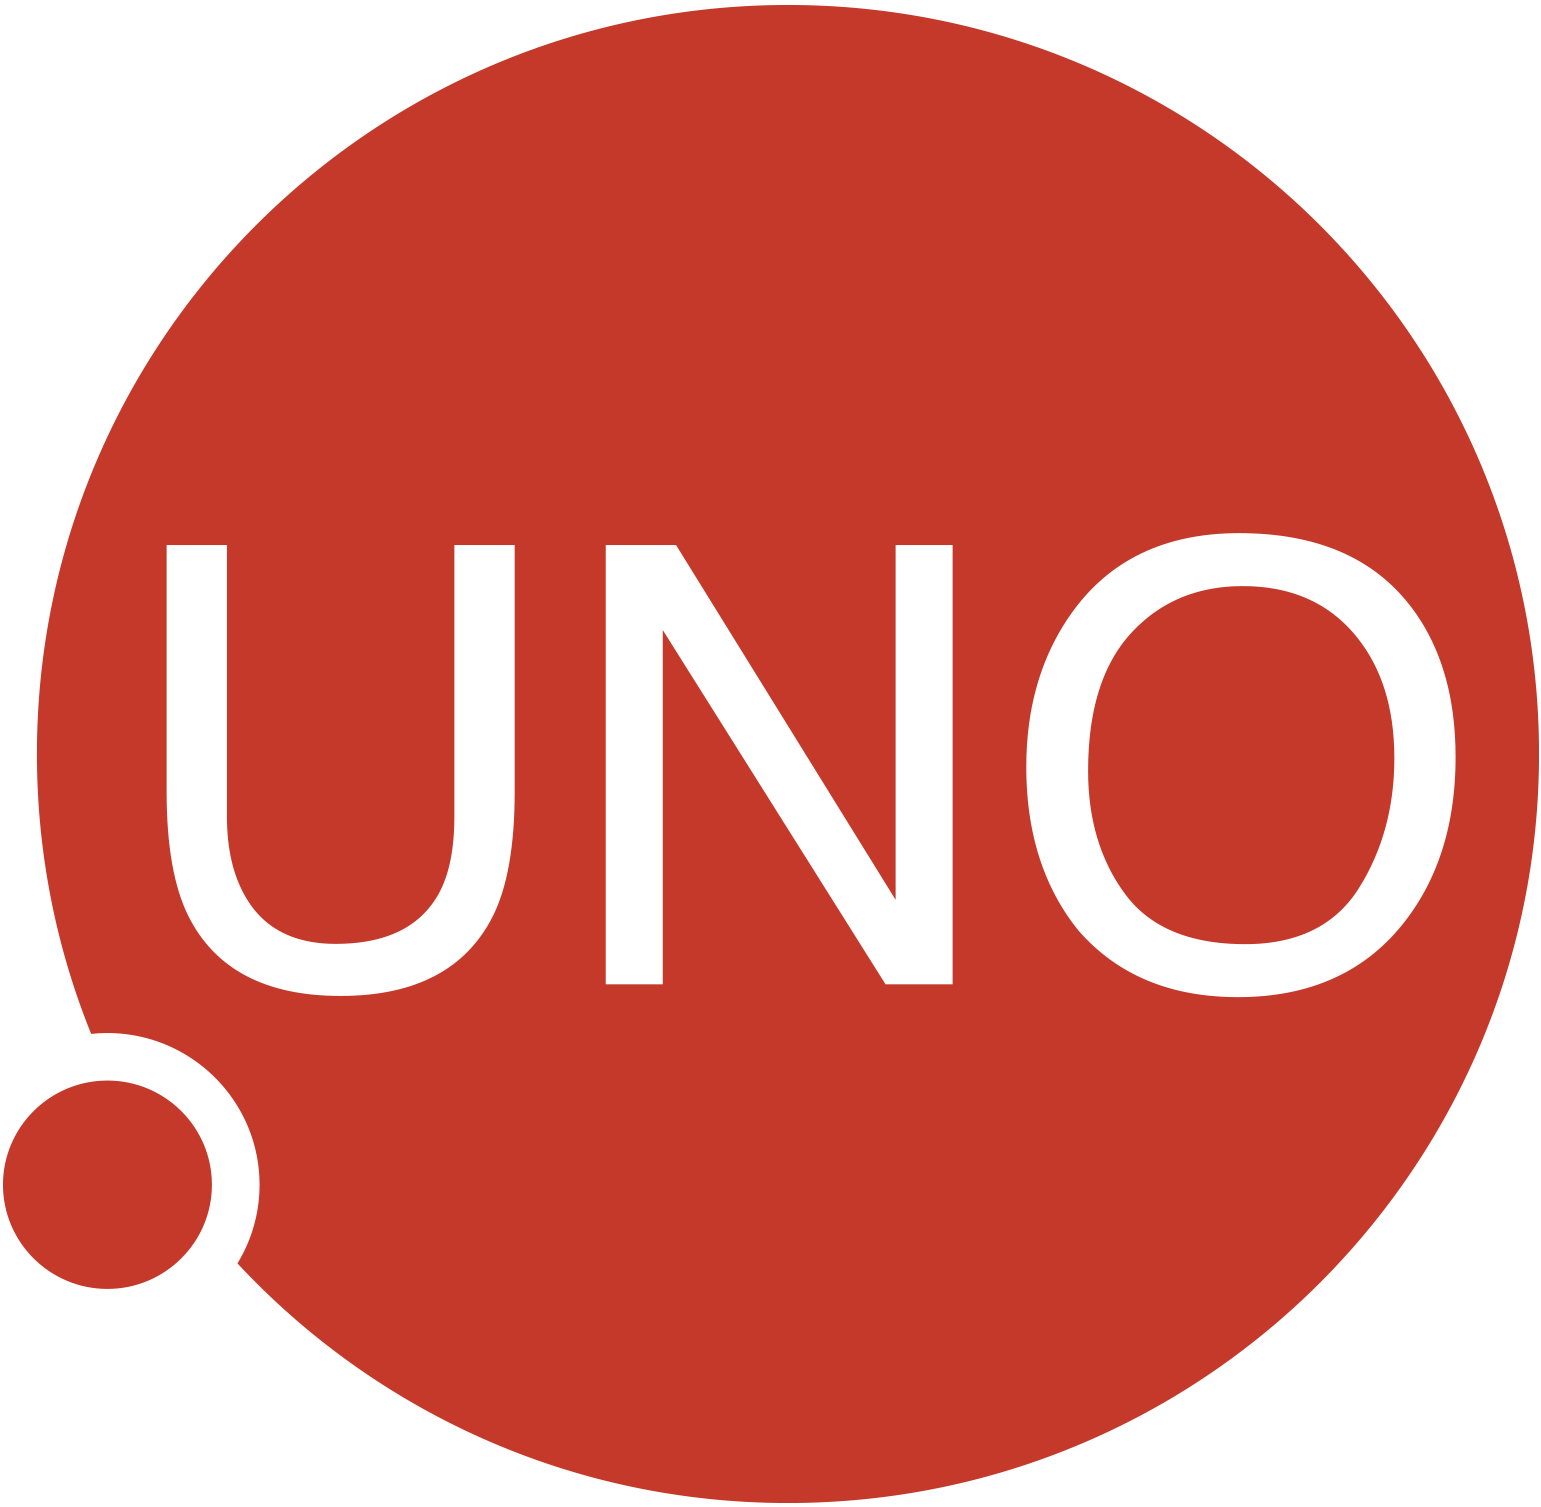 .uno Domain Name